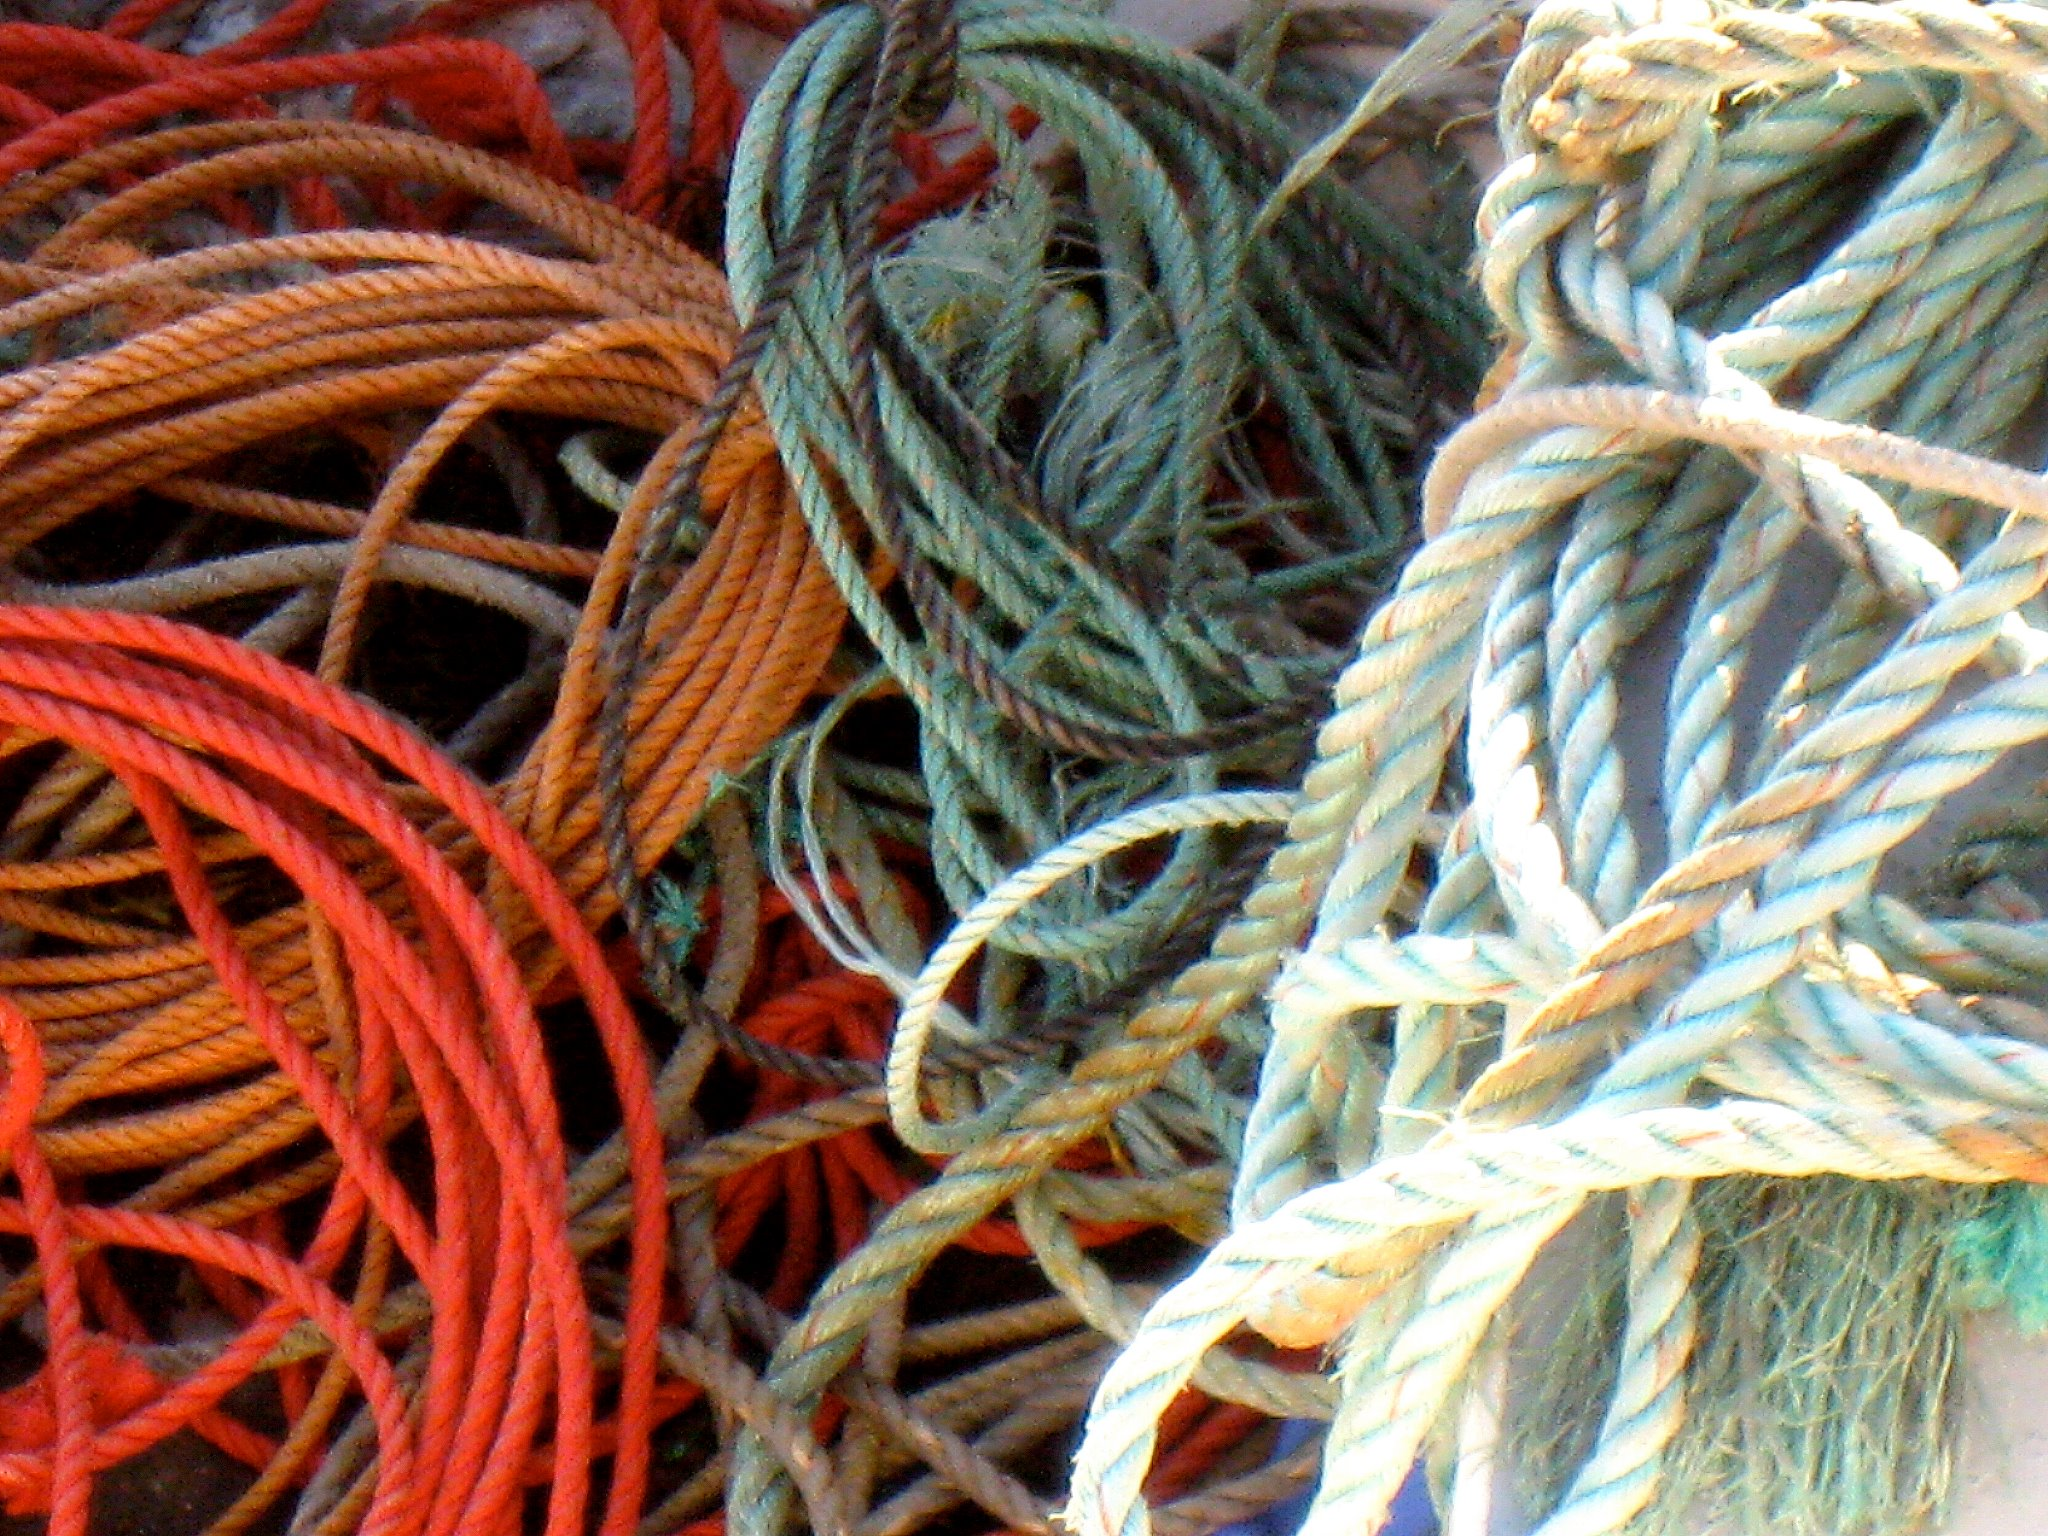 Lobster fishing rope. Photo courtesy of Billy Kitchen.